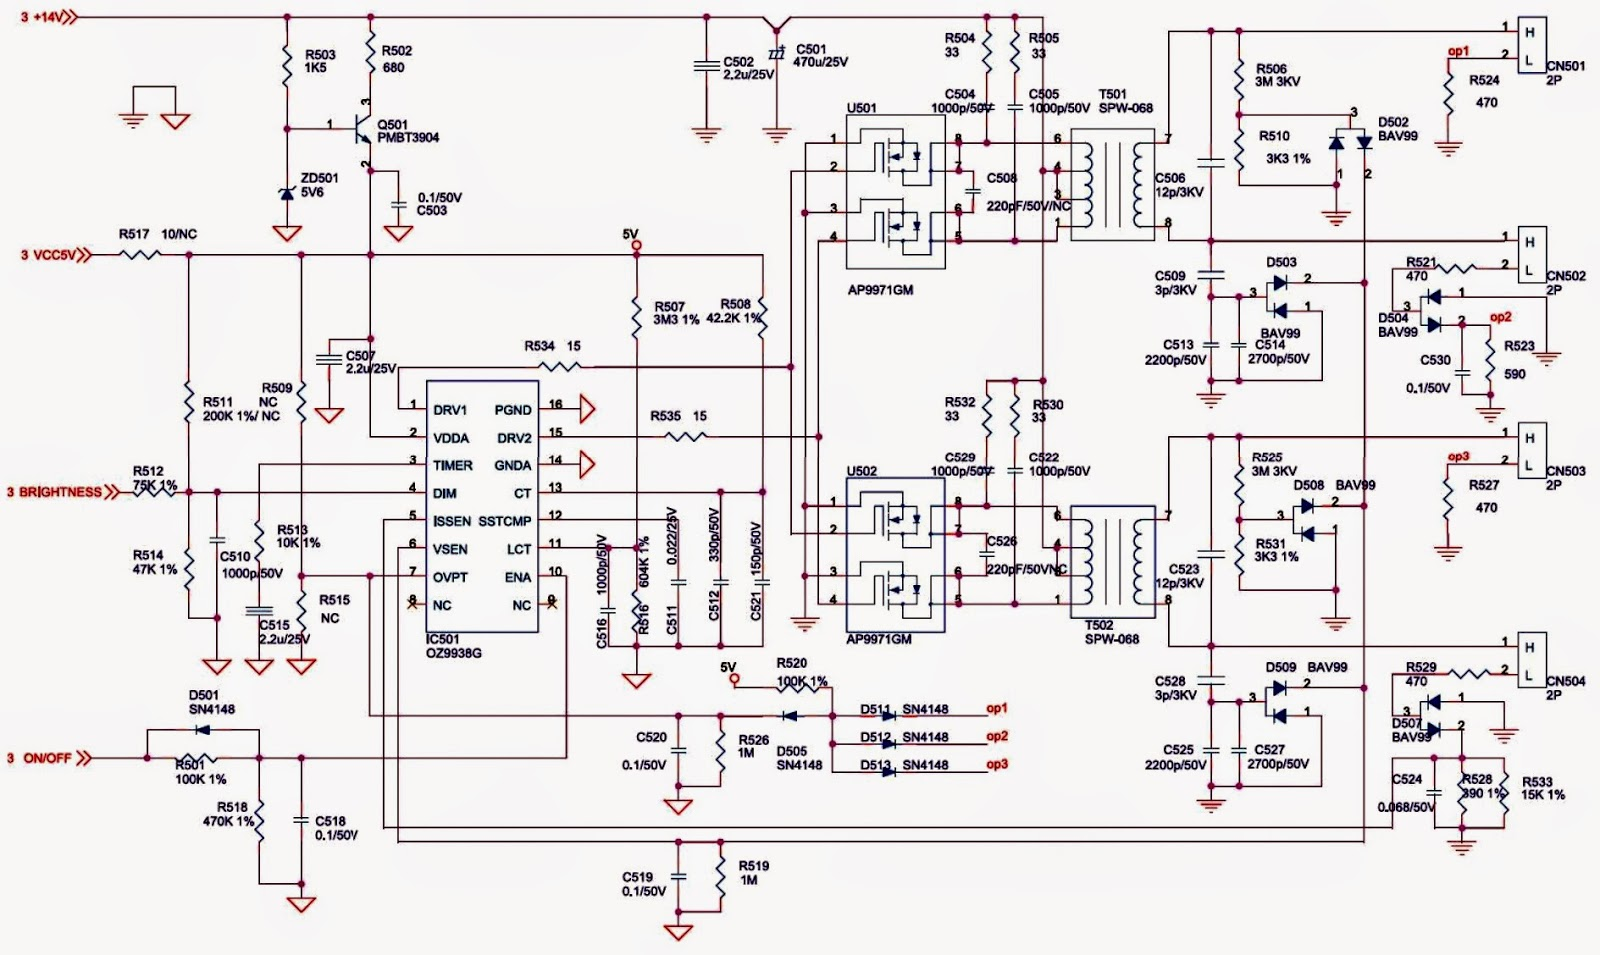 SAMSUNG 920NW – 19 Inch LCD MONITOR Circuit Diagram – SMPS